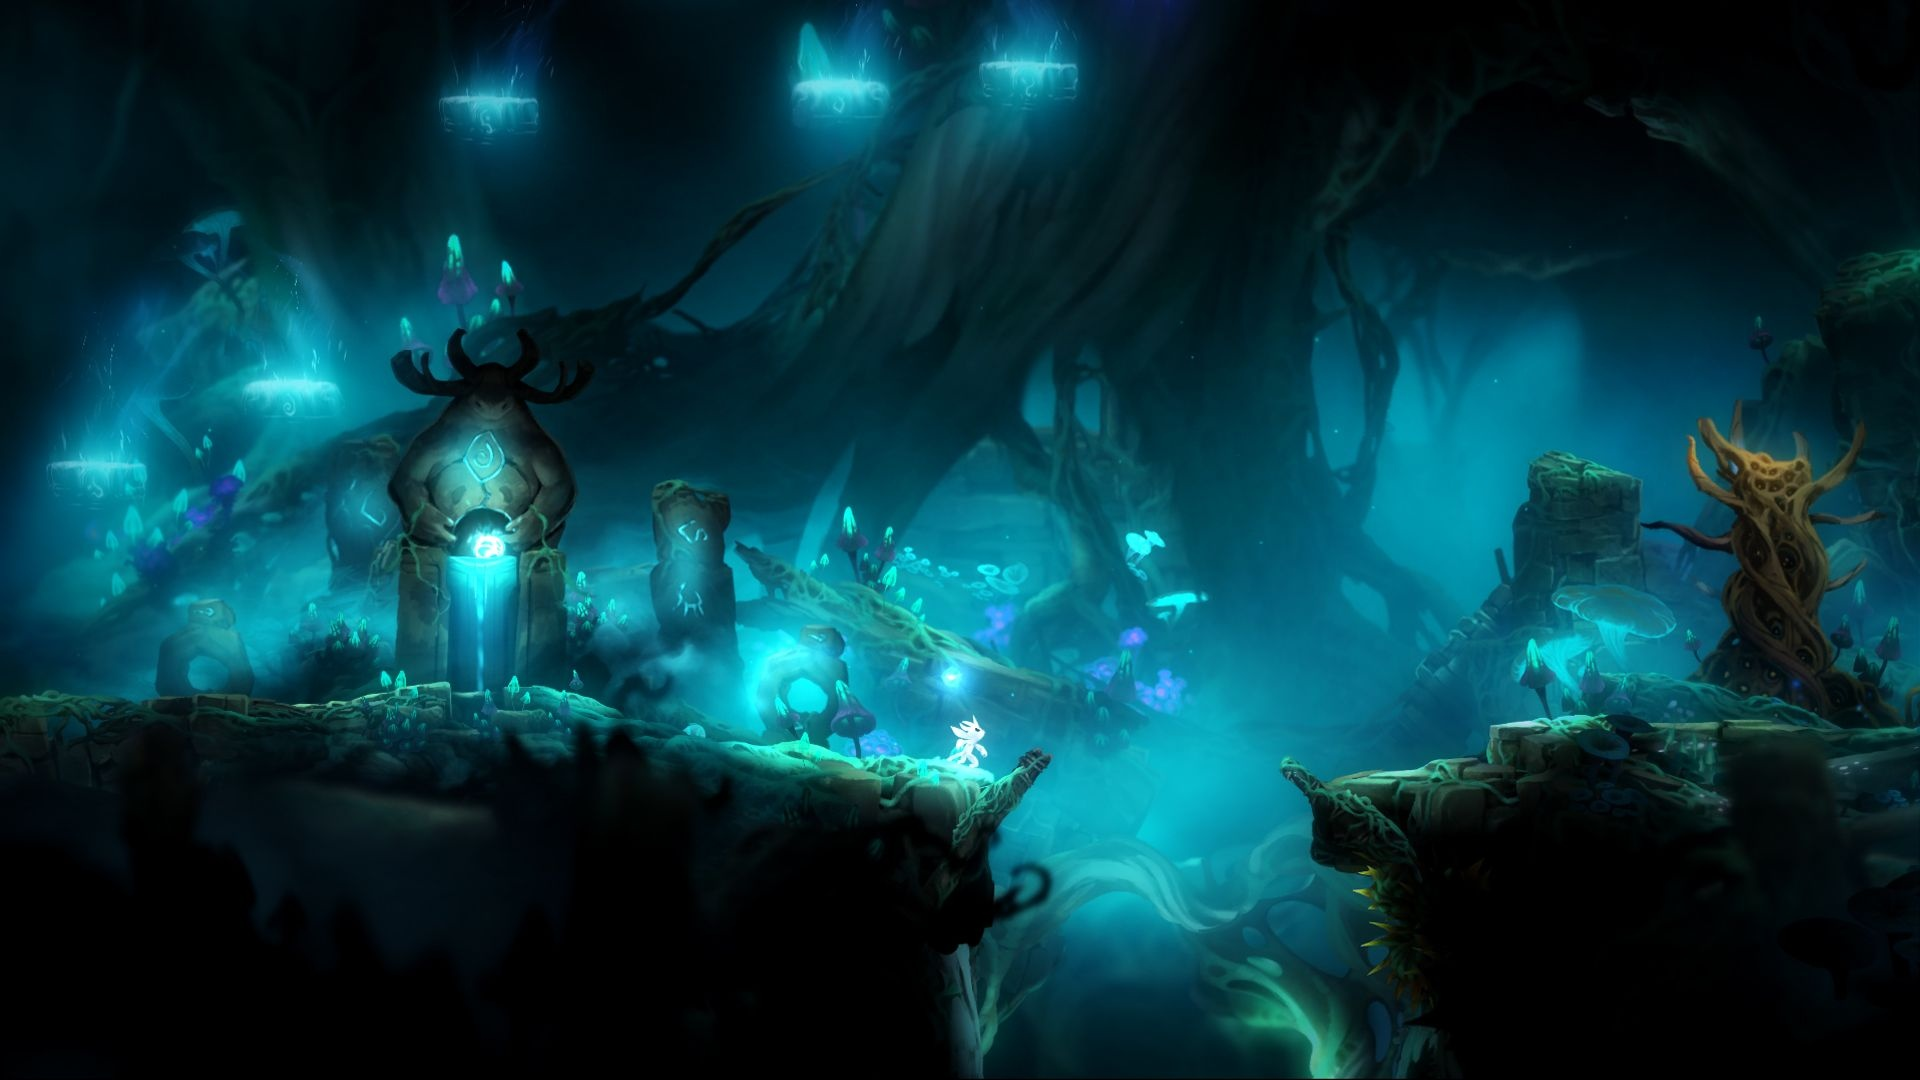 ori_and_the_blind_forest_definitive_edition_screenshot_20160301164816_8_original